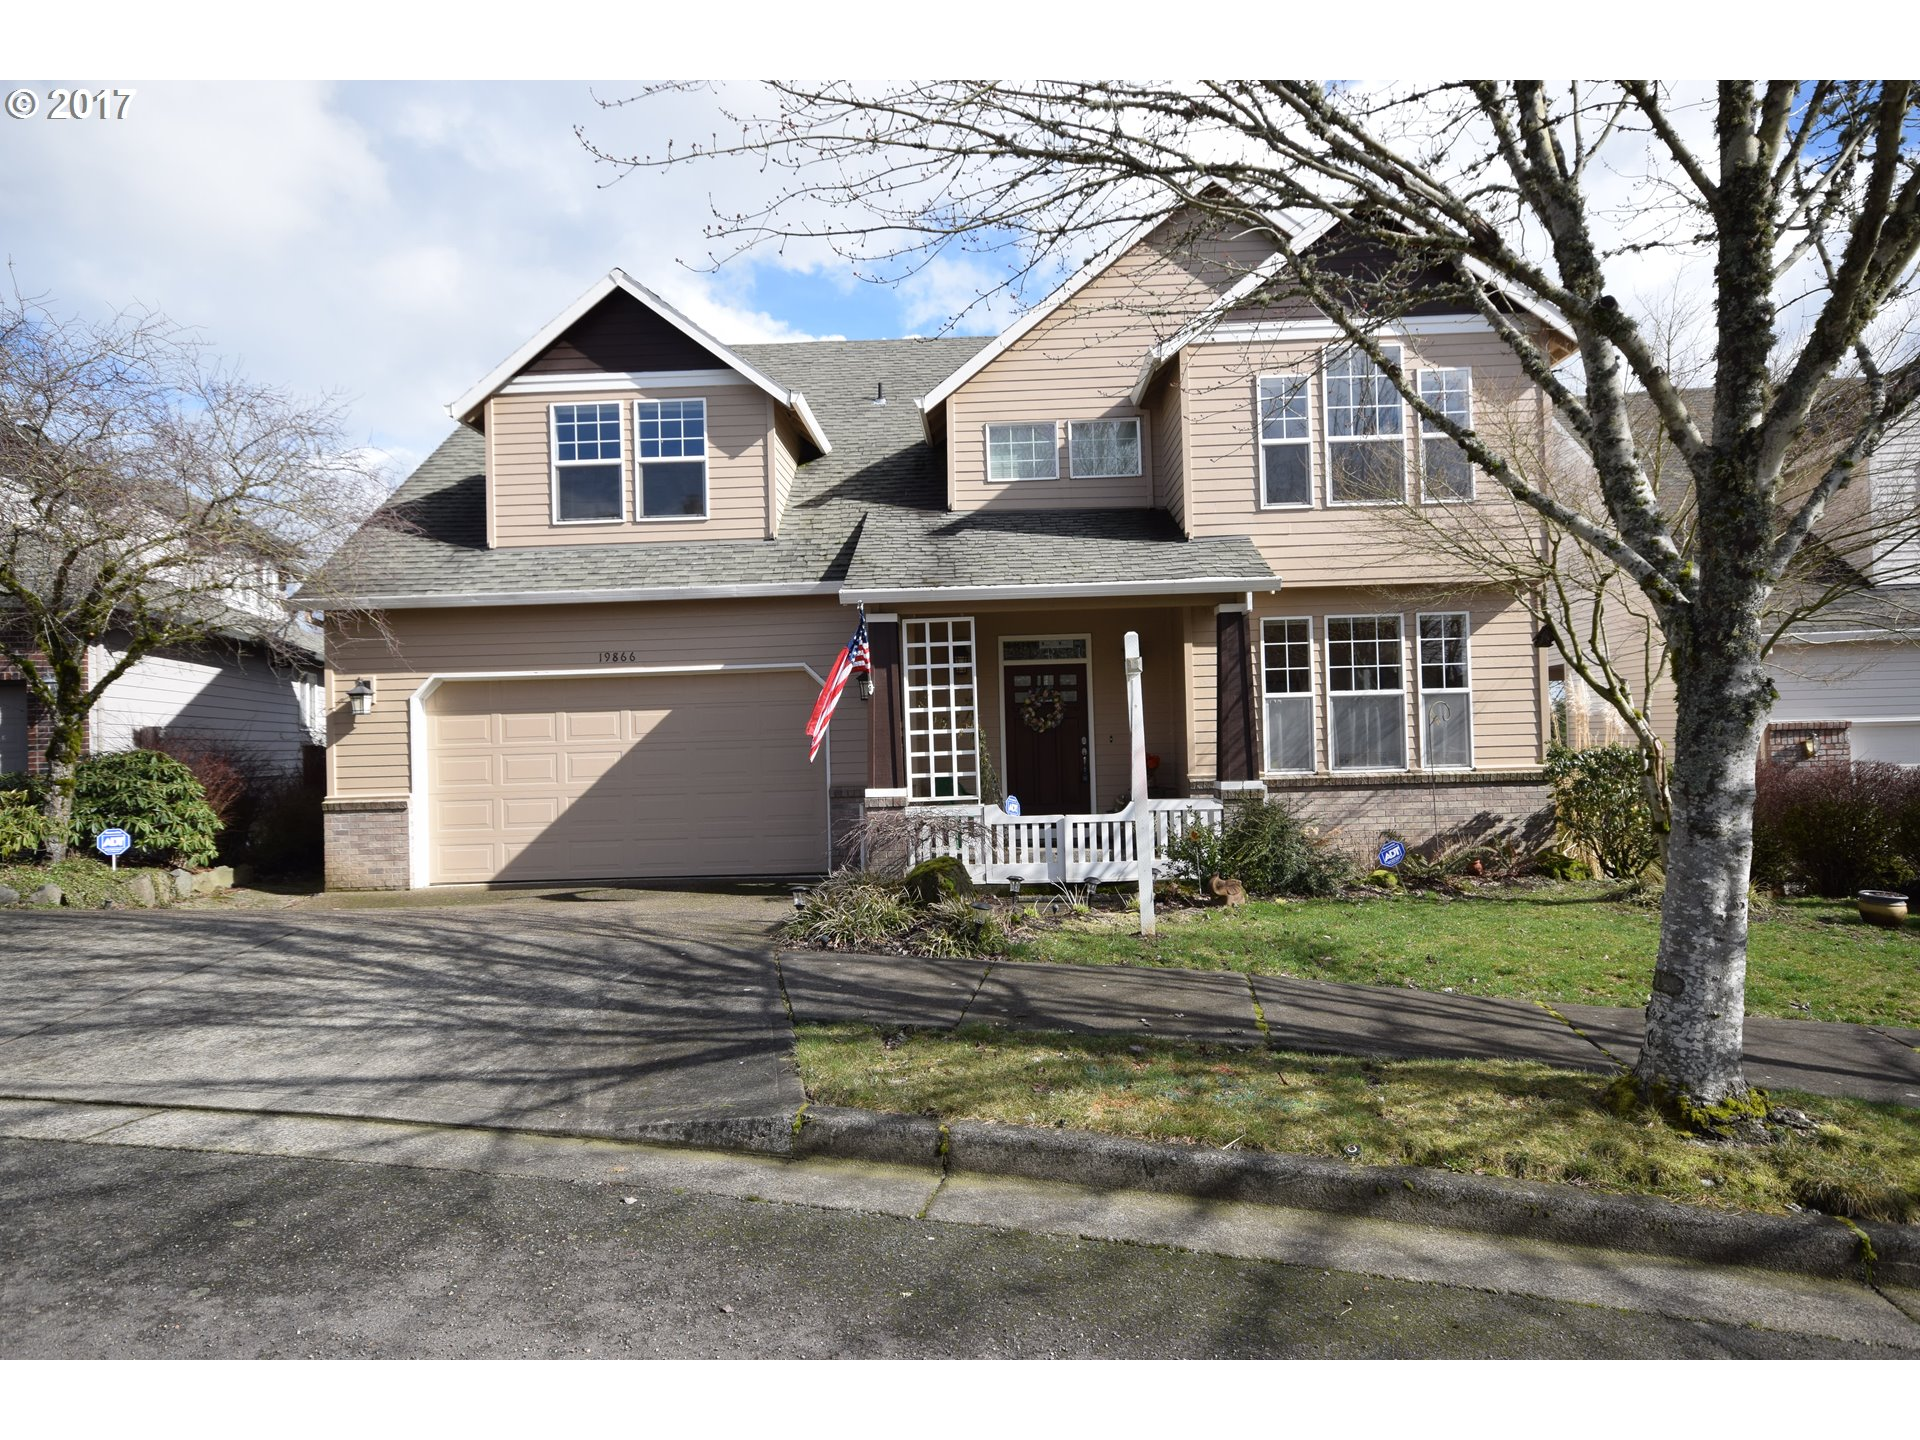 3690 sq. ft 4 bedrooms 2 bathrooms  House For Sale,West Linn, OR